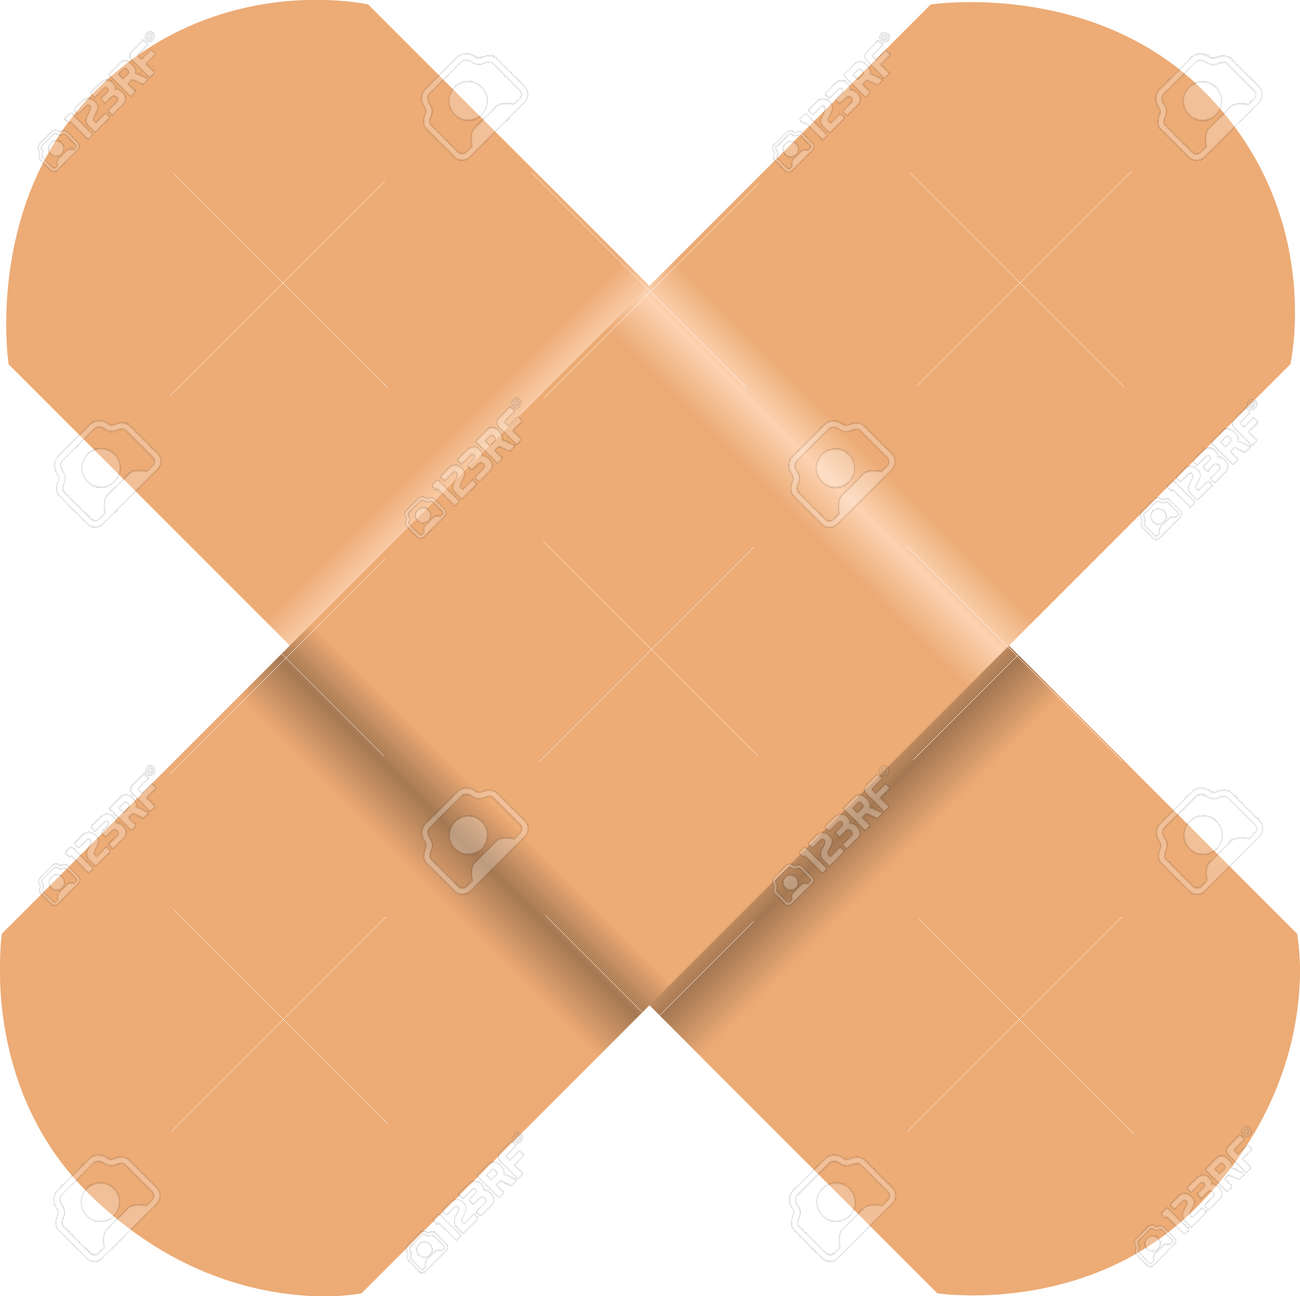 Used medical adhesive plaster in a common used form - a cross. - 169441826